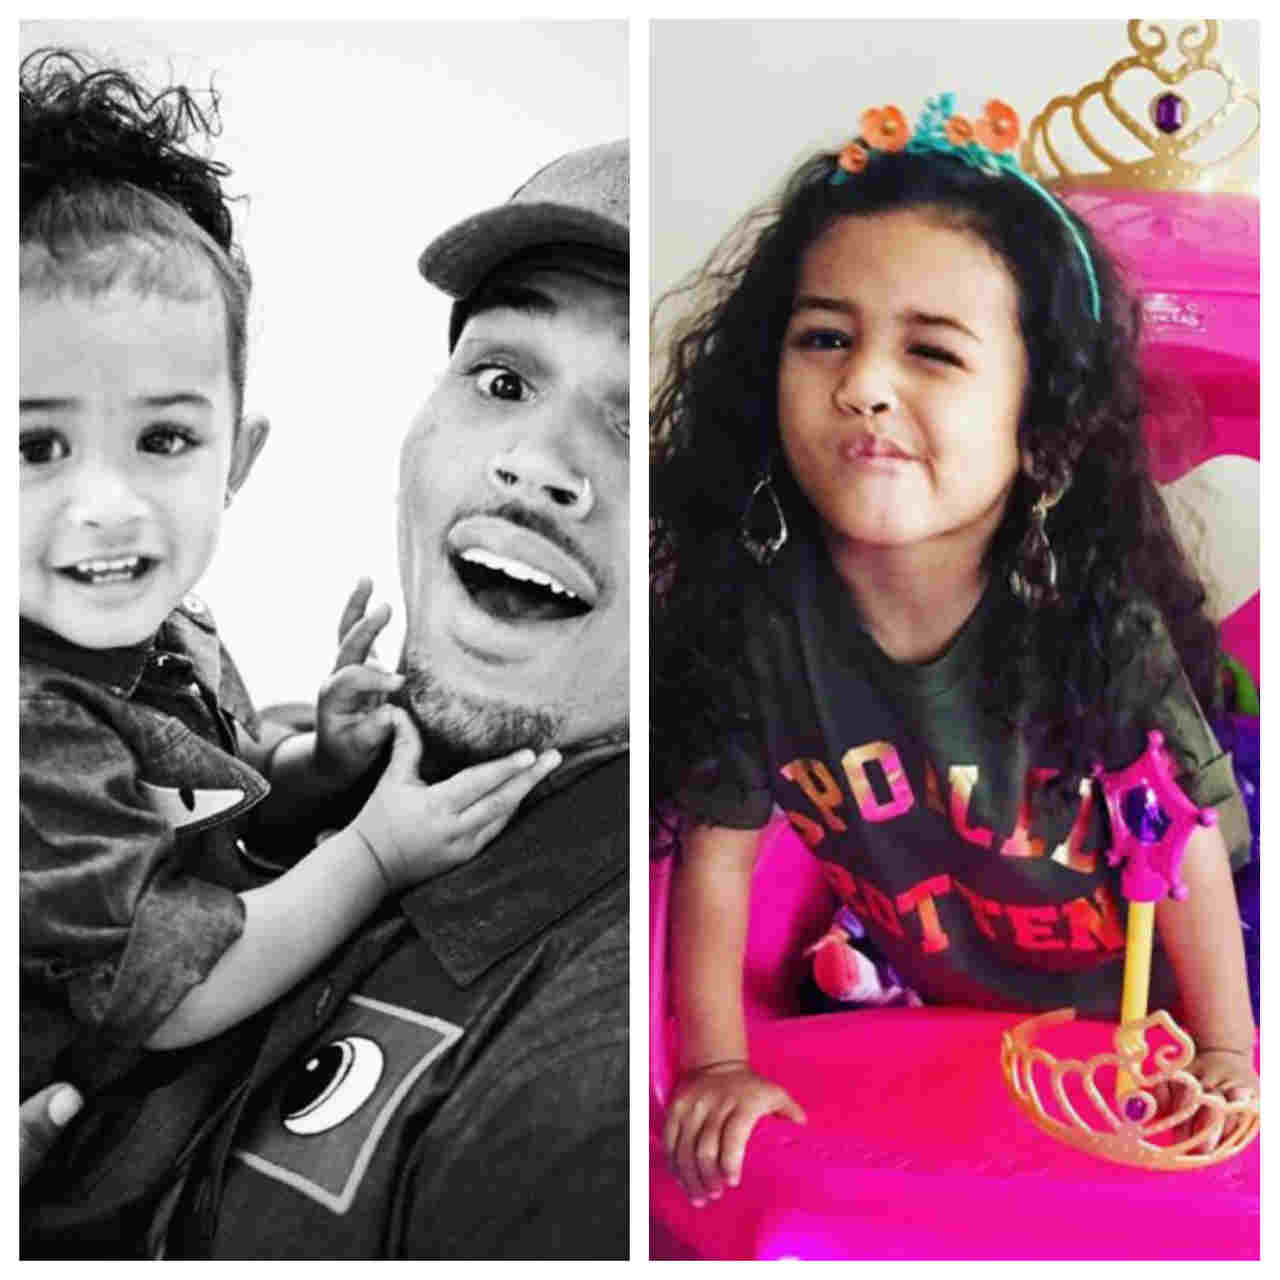 Chris Brown shares cute photo of his daughter, Royalty ...